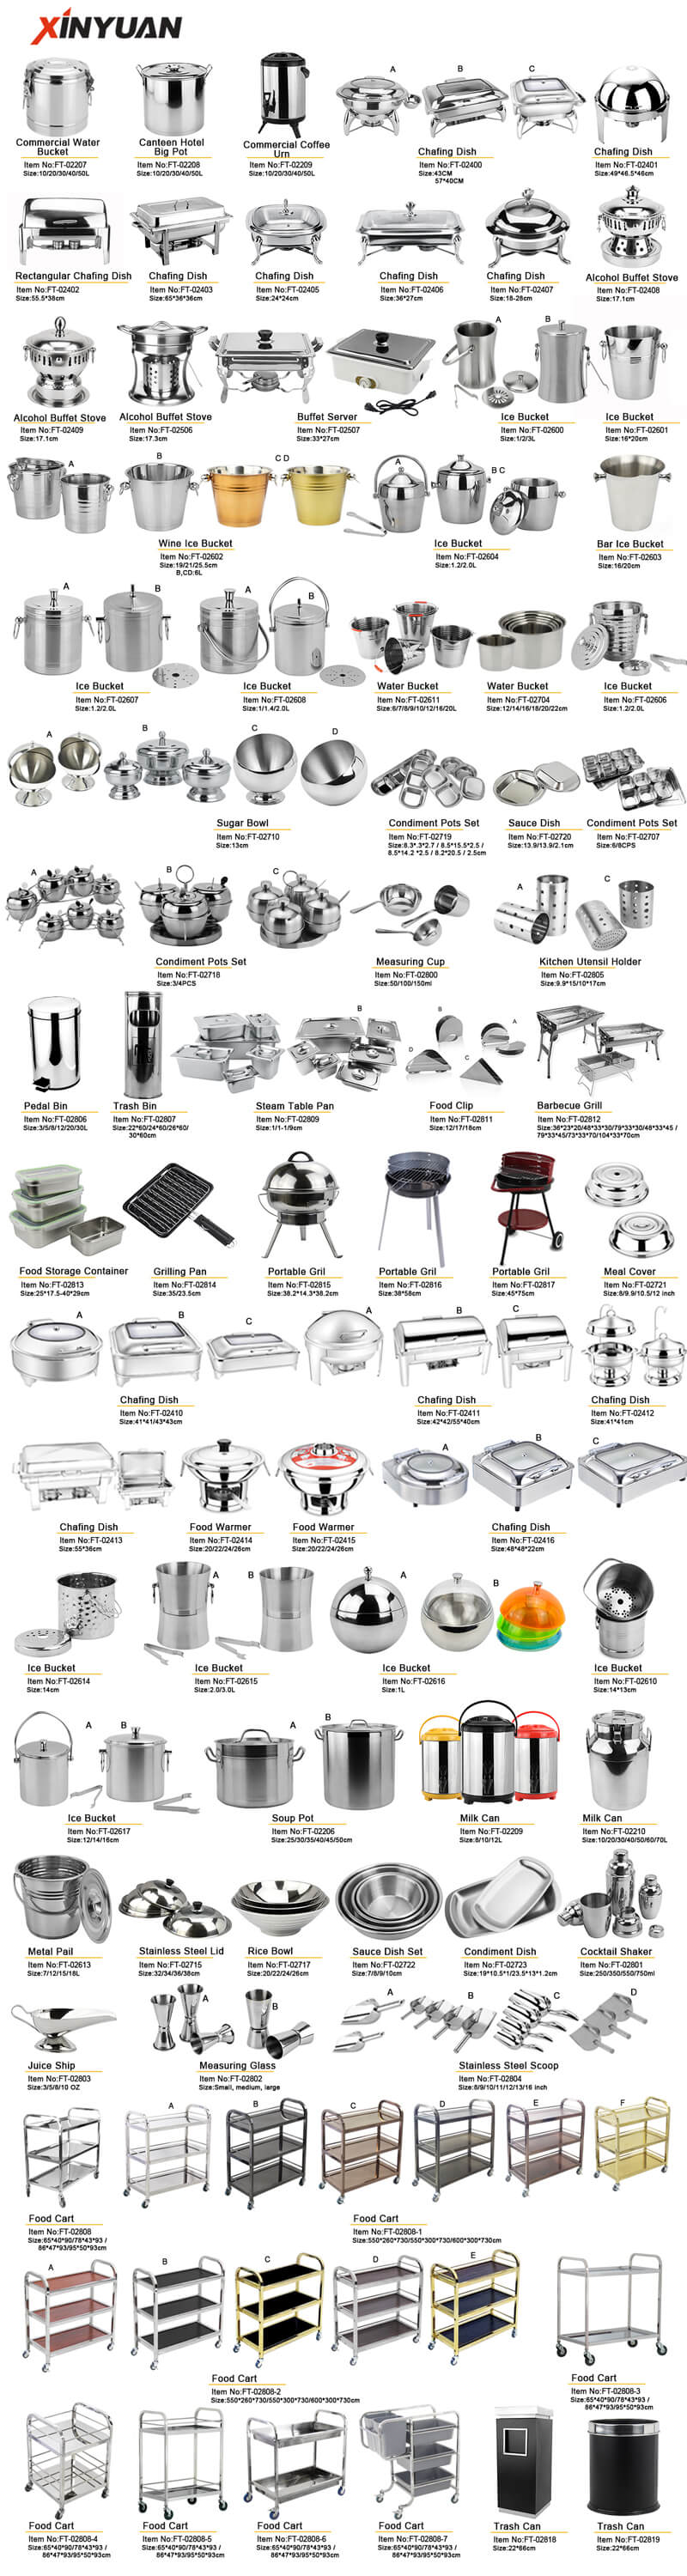 hotel series stainless steel wholesale